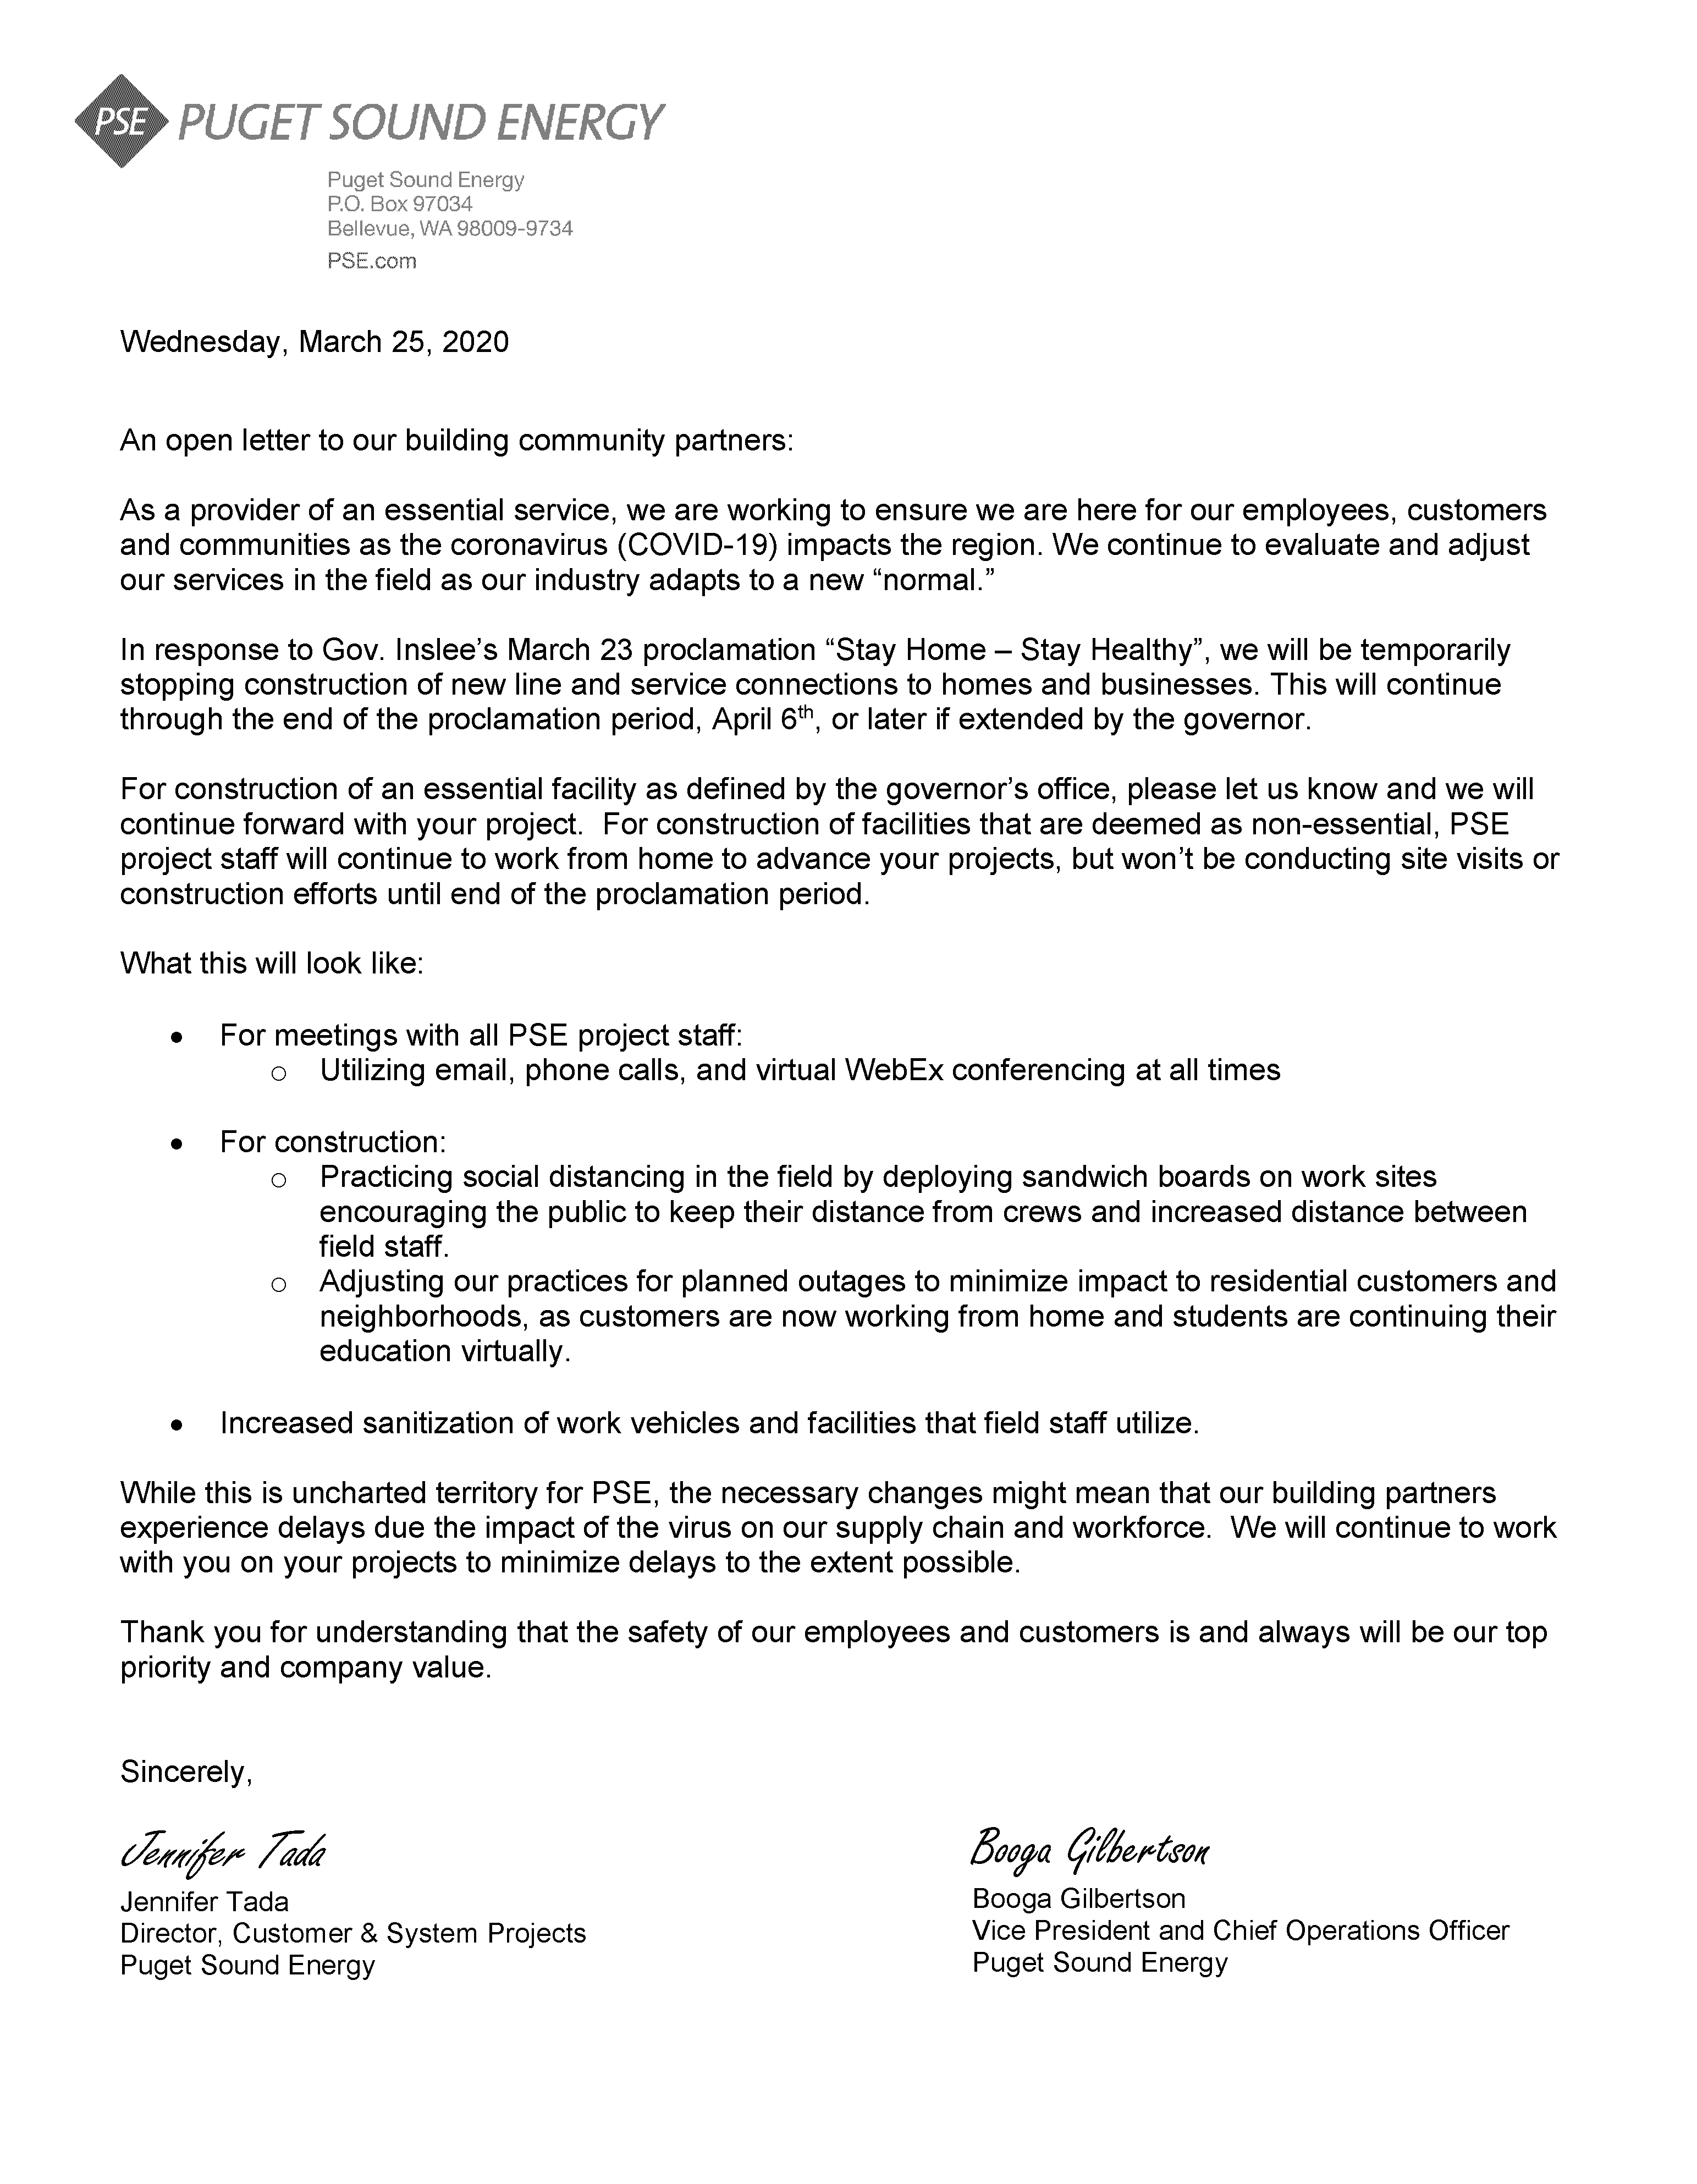 PSE letter to building community